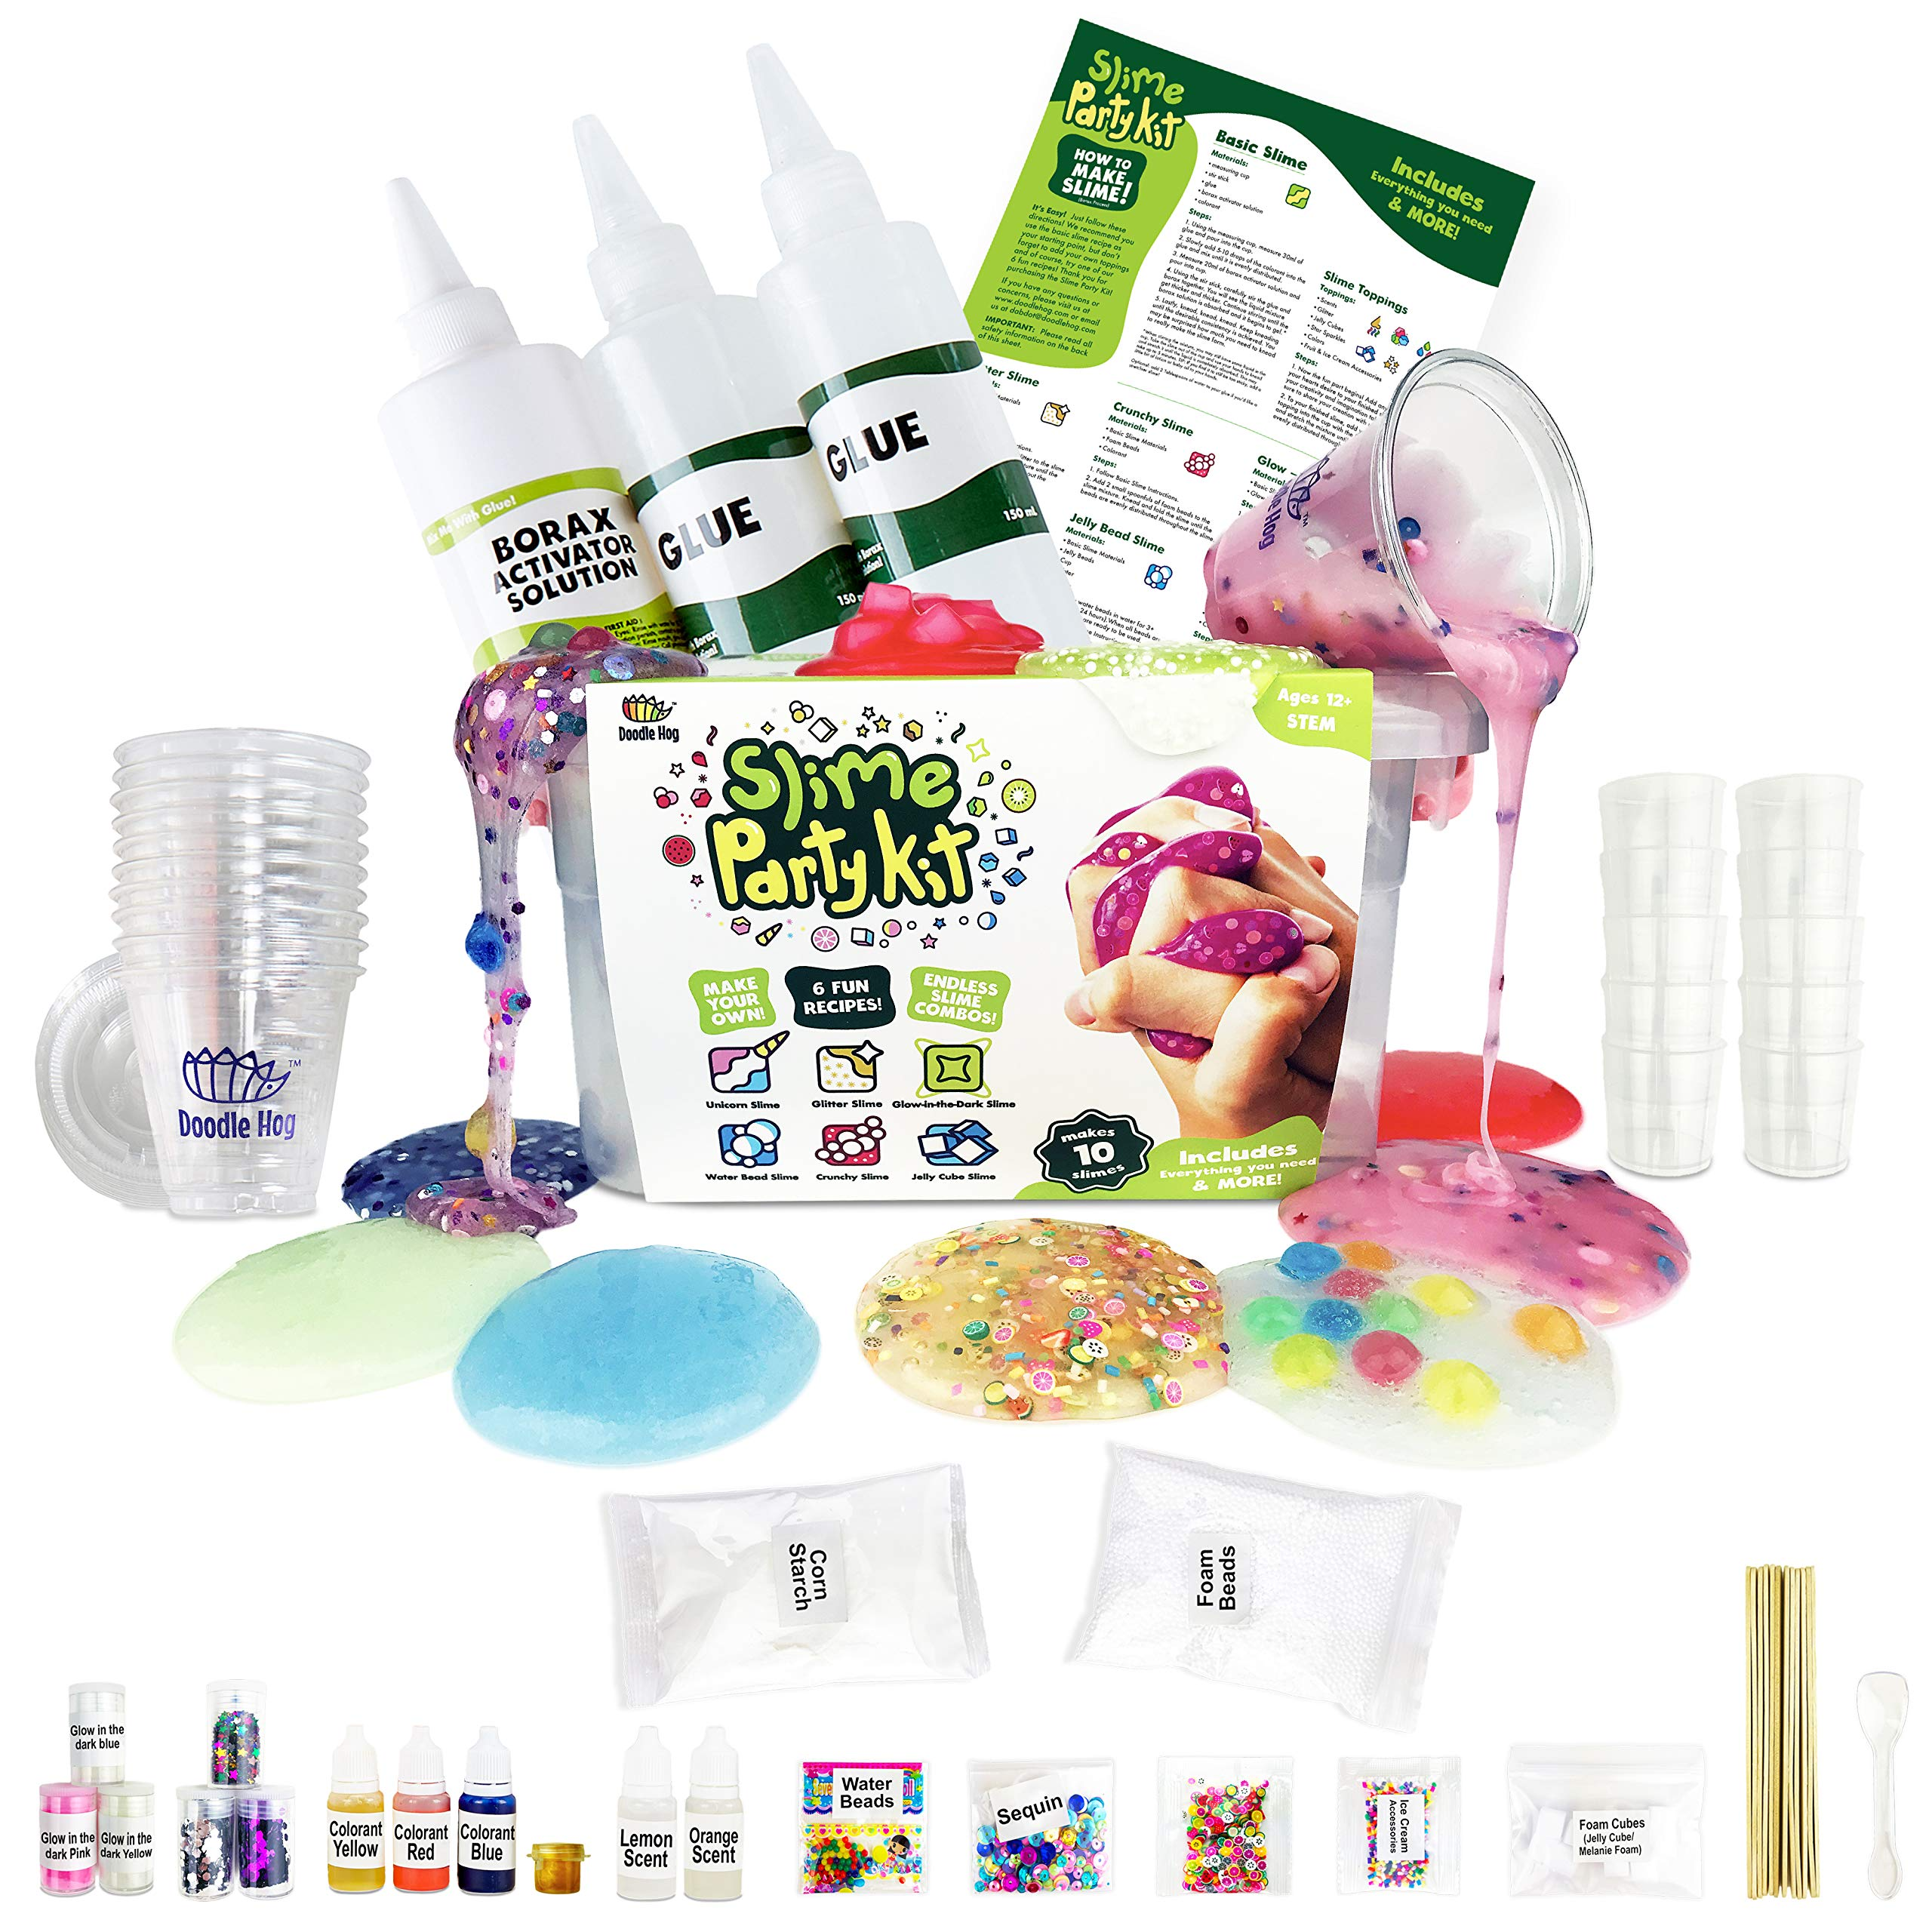 Incredible DIY Slime Party Kit for Girls and Boys (100+ Pieces). All You Need to Make 10 Colorful Slimes. Includes 6 Fun Slime Recipes Plus Cool Toppings for Endless Slime Combos! by Dab and Dot Markers